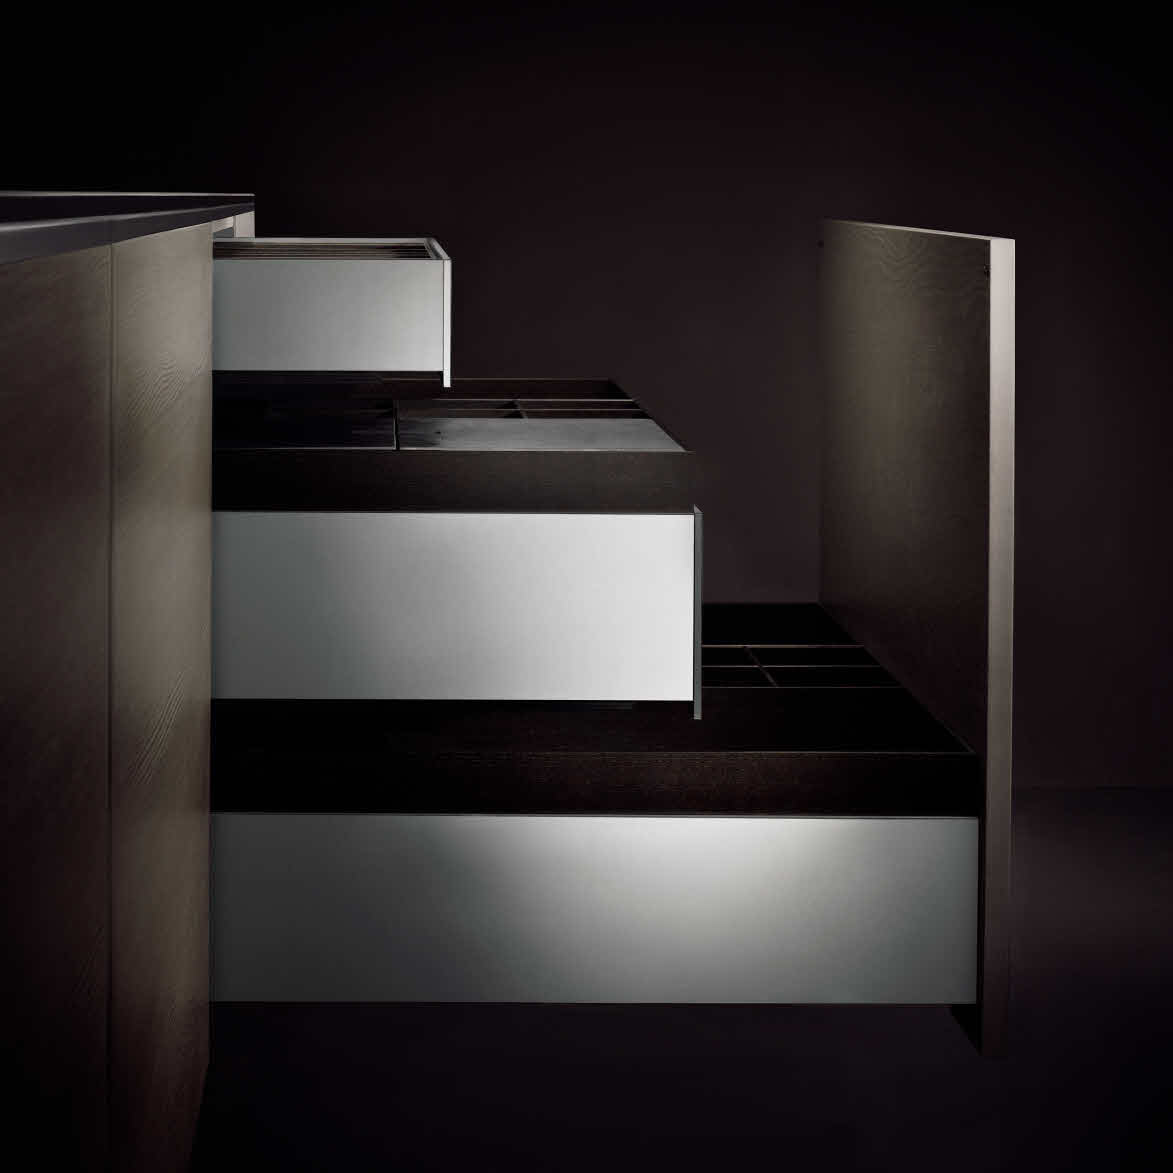 Porsche Design-küche P7340 Poggenpohl Porsche Design Kitchen P7340 Allumini If It